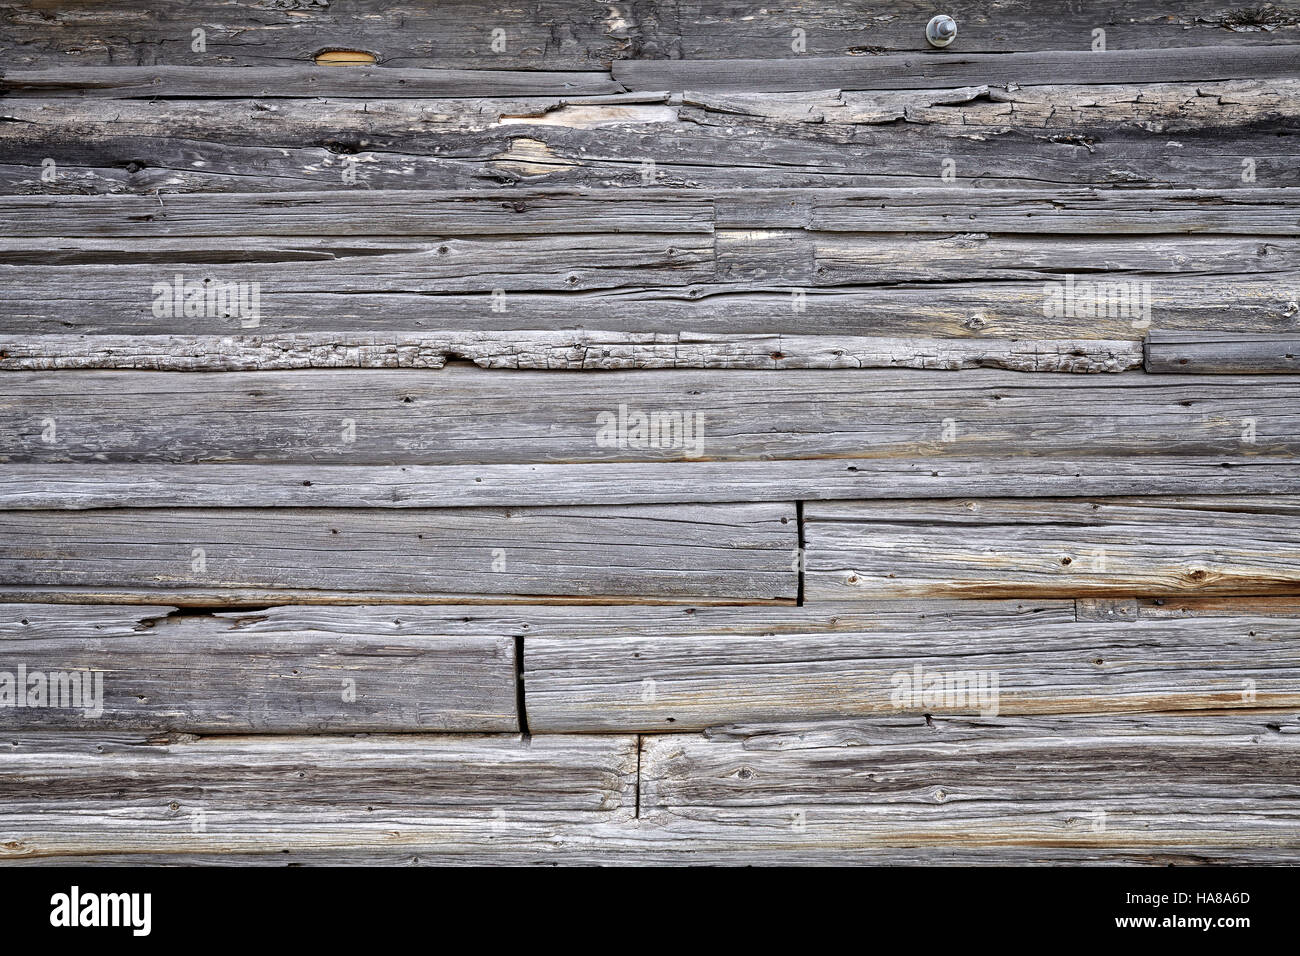 Photo of old wooden barn wall background. - Stock Image